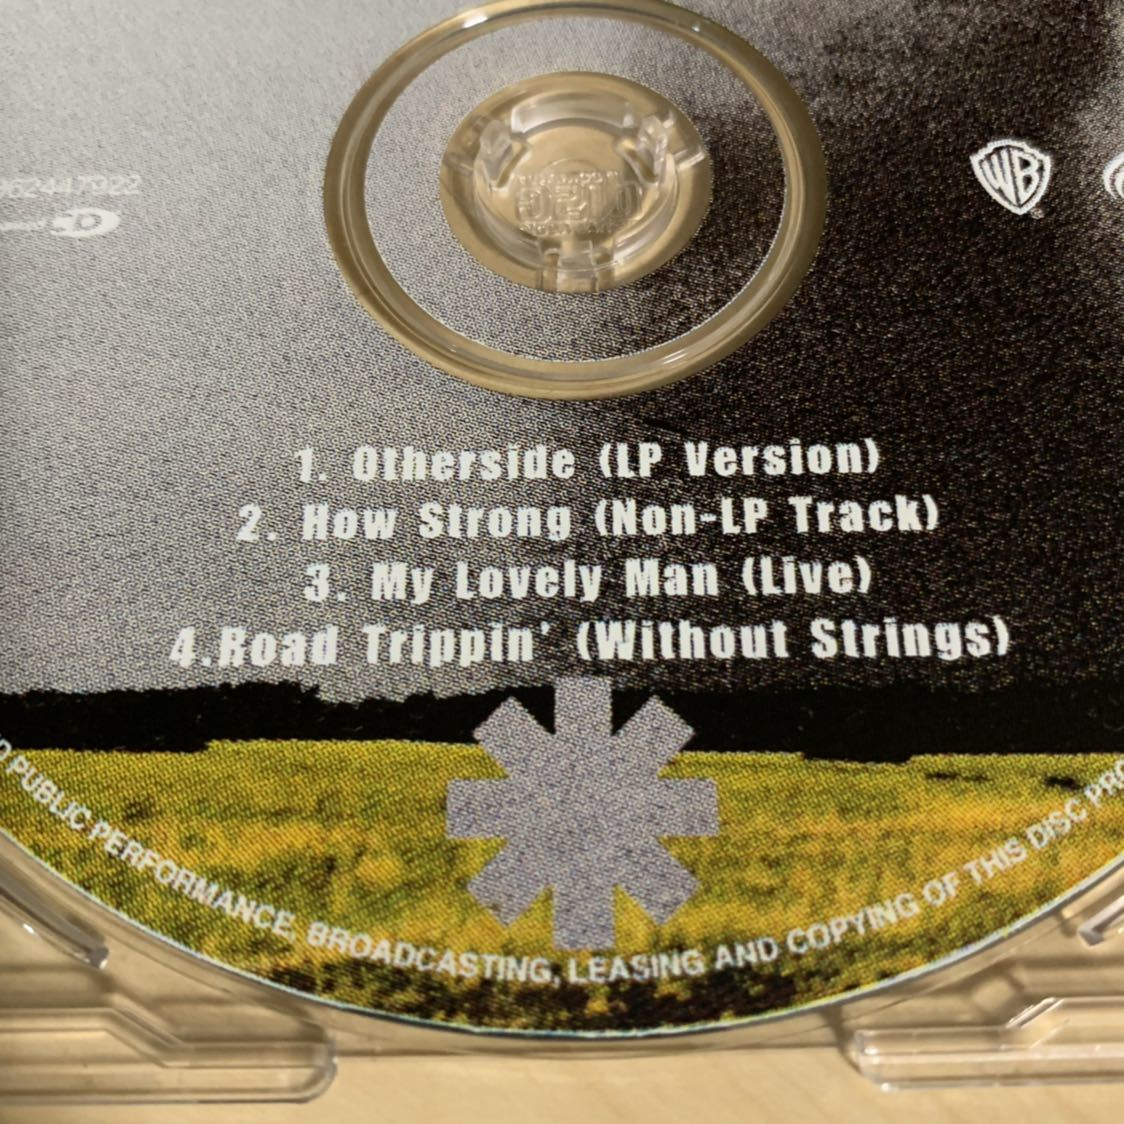 OTHERSIDE RED HOT CHILI PEPPERS レッチリ レッド ホット チリ ペッパーズ シングルCD アザーサイド 海外盤_画像6